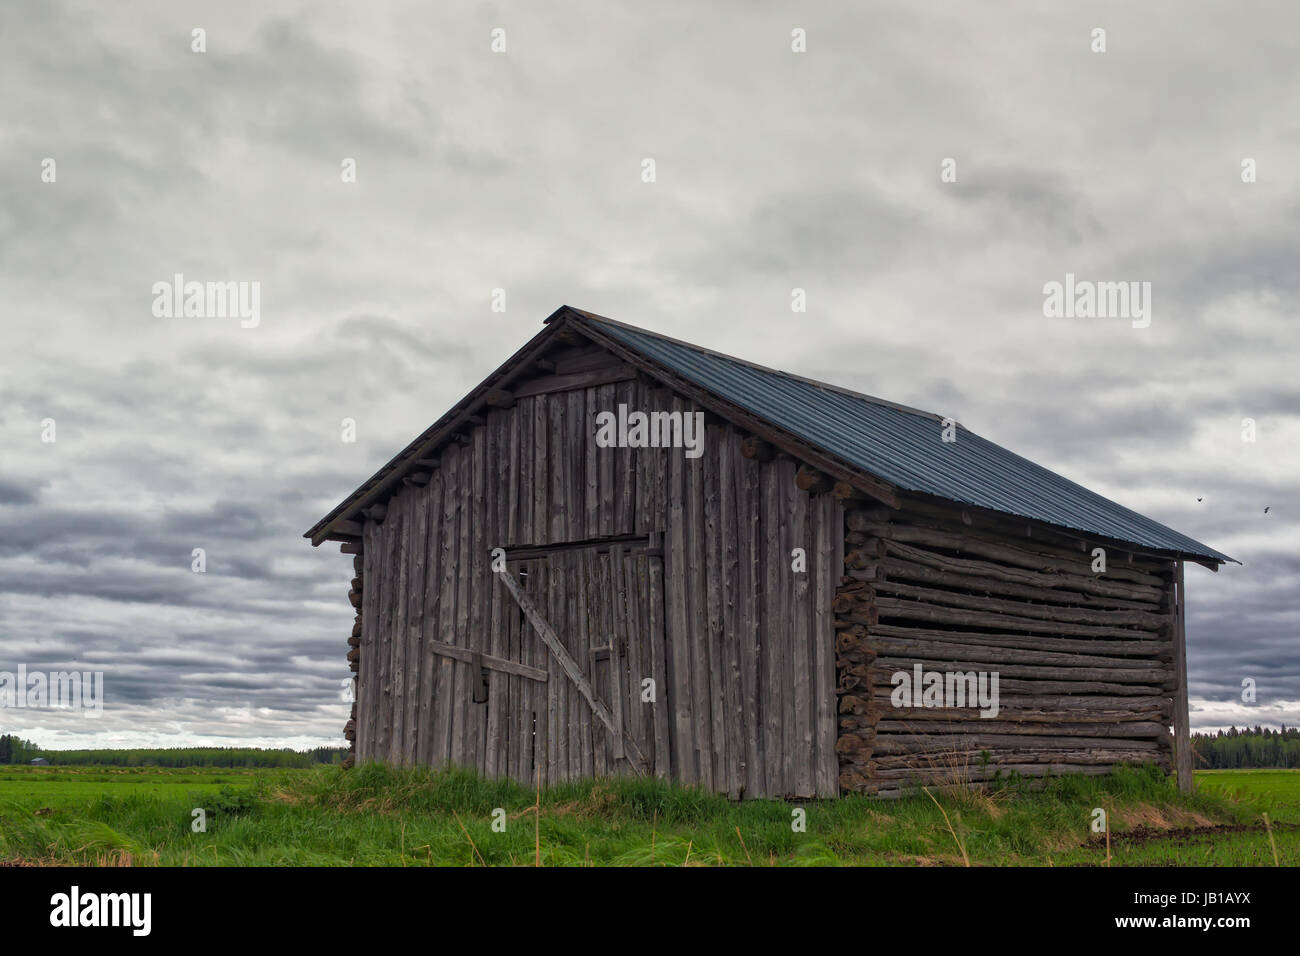 An old barn house locked up in the middle of the fields of the Northern Finland. The clouds of the summer are gathering - Stock Image